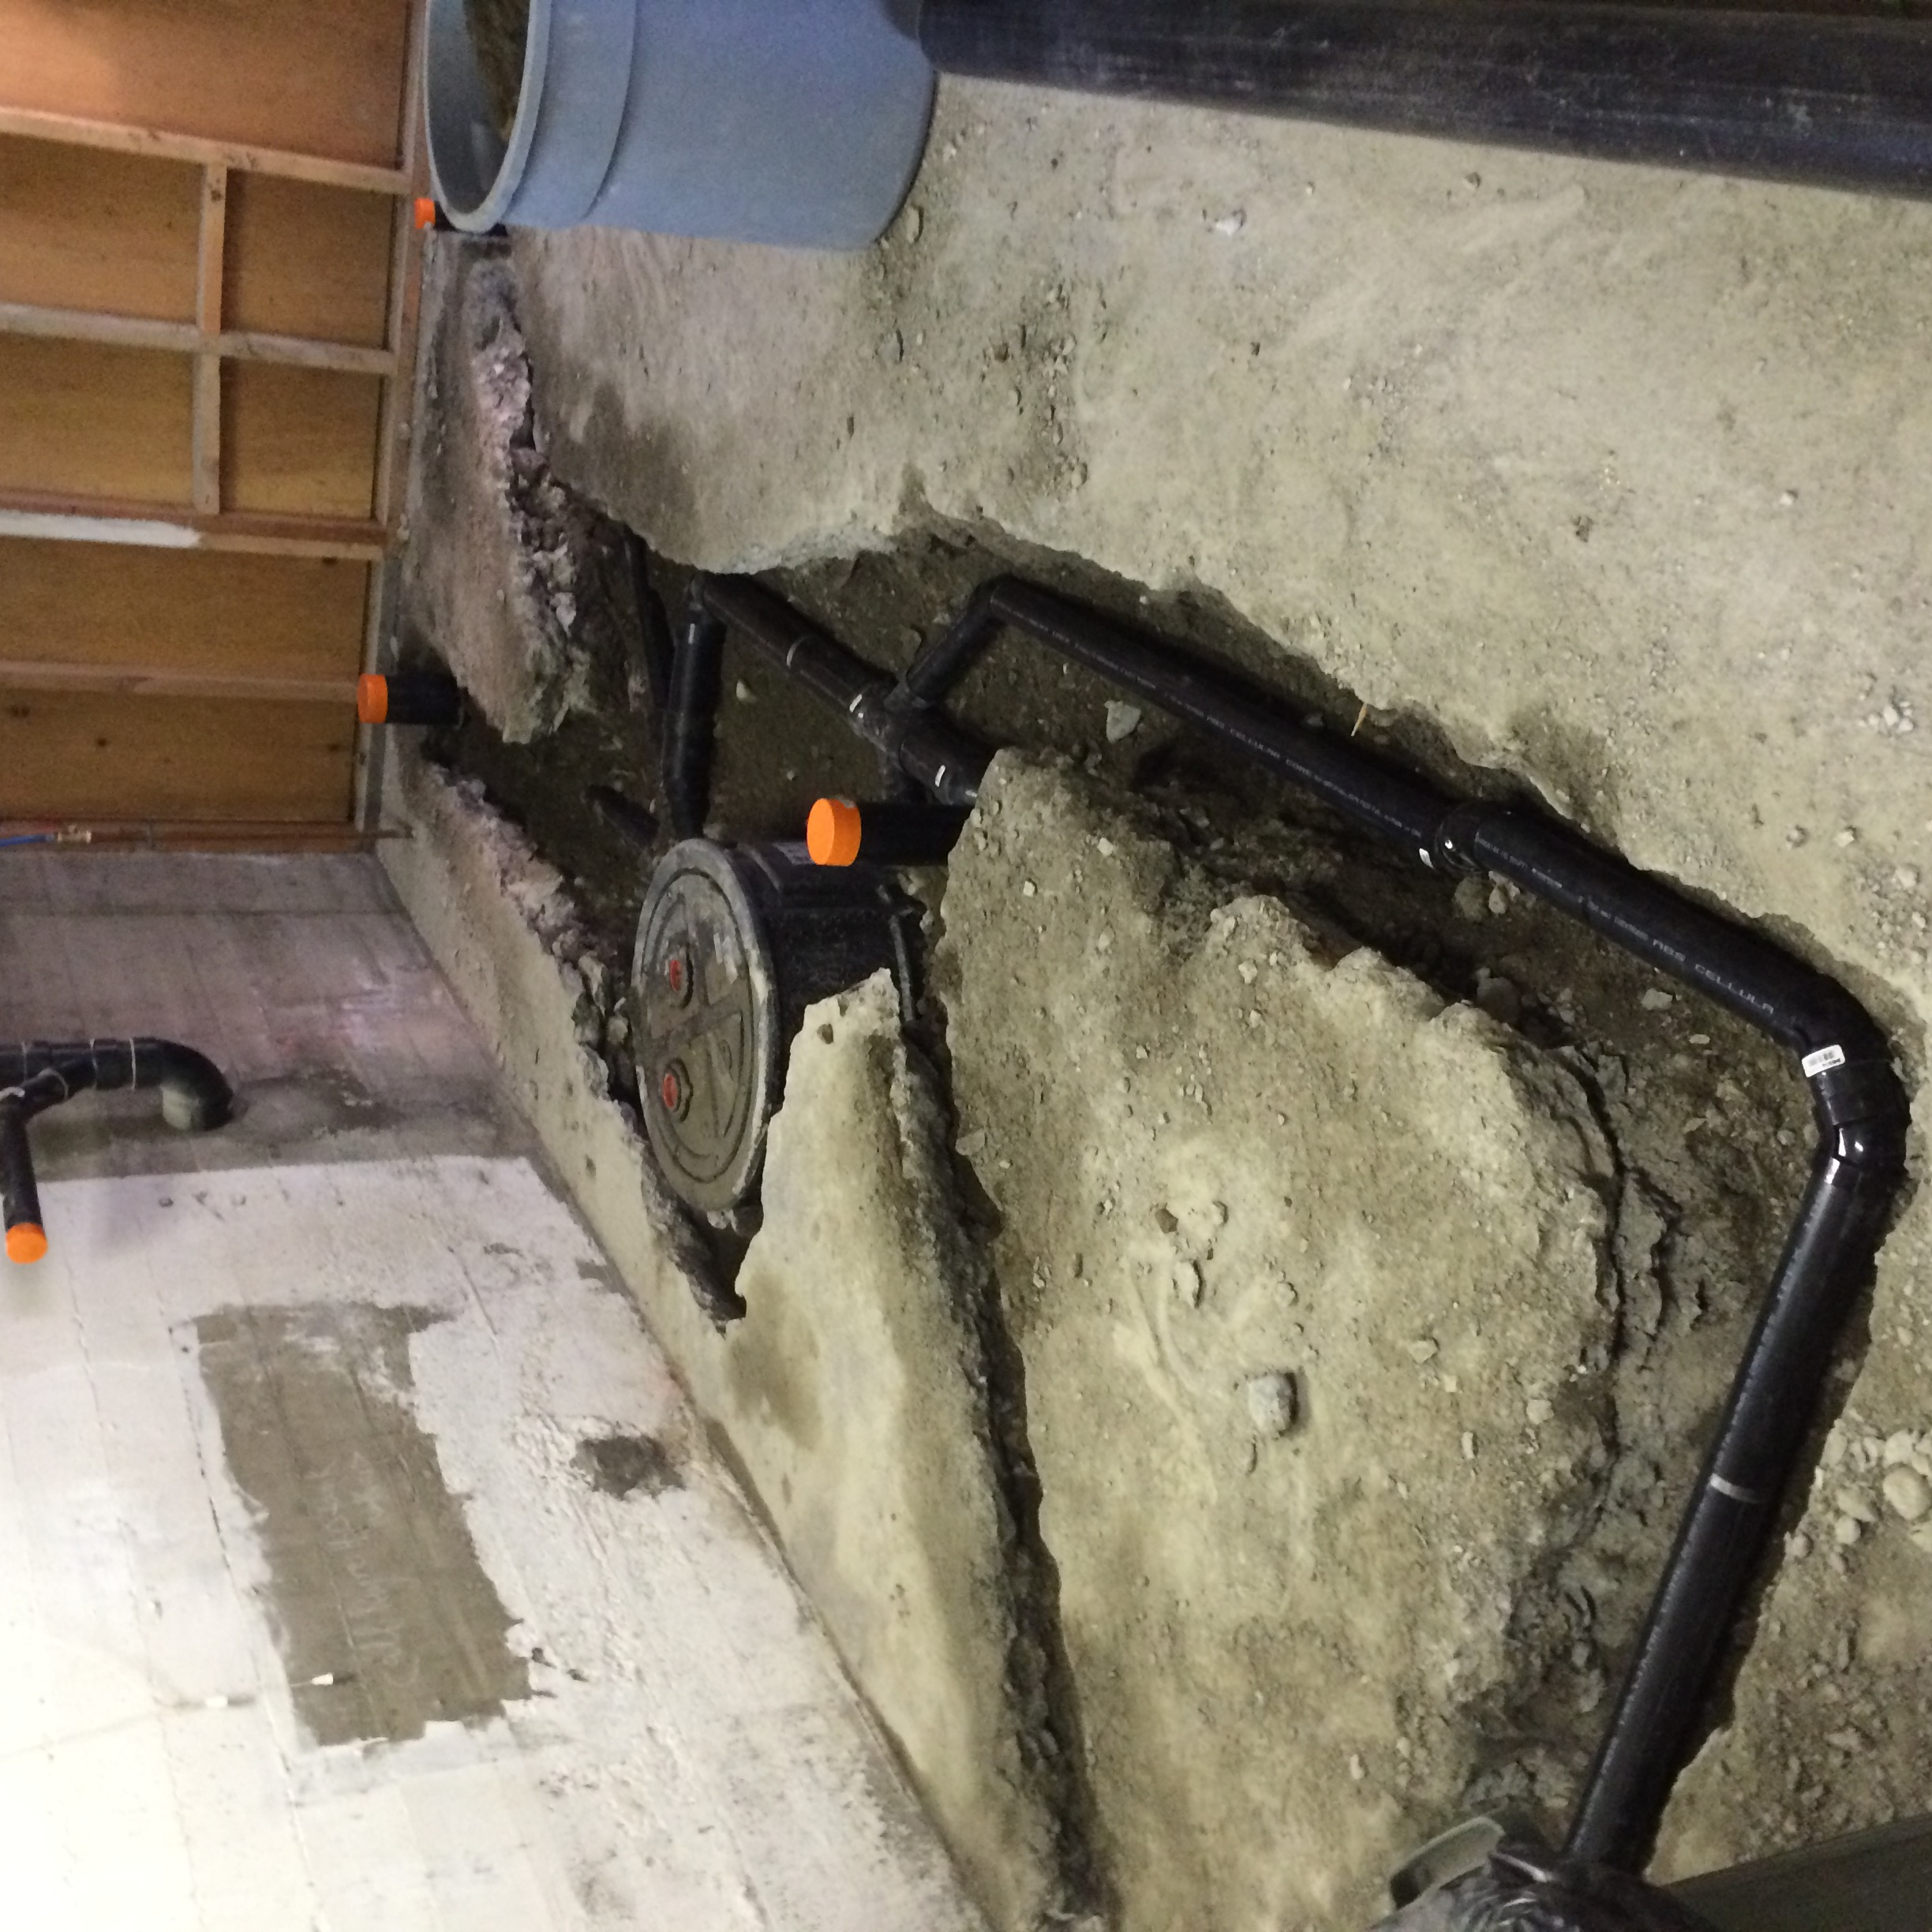 Sump Pump For Bathroom In Basement 28 Images Sump Pumps Archives Asi Plumbing Modern